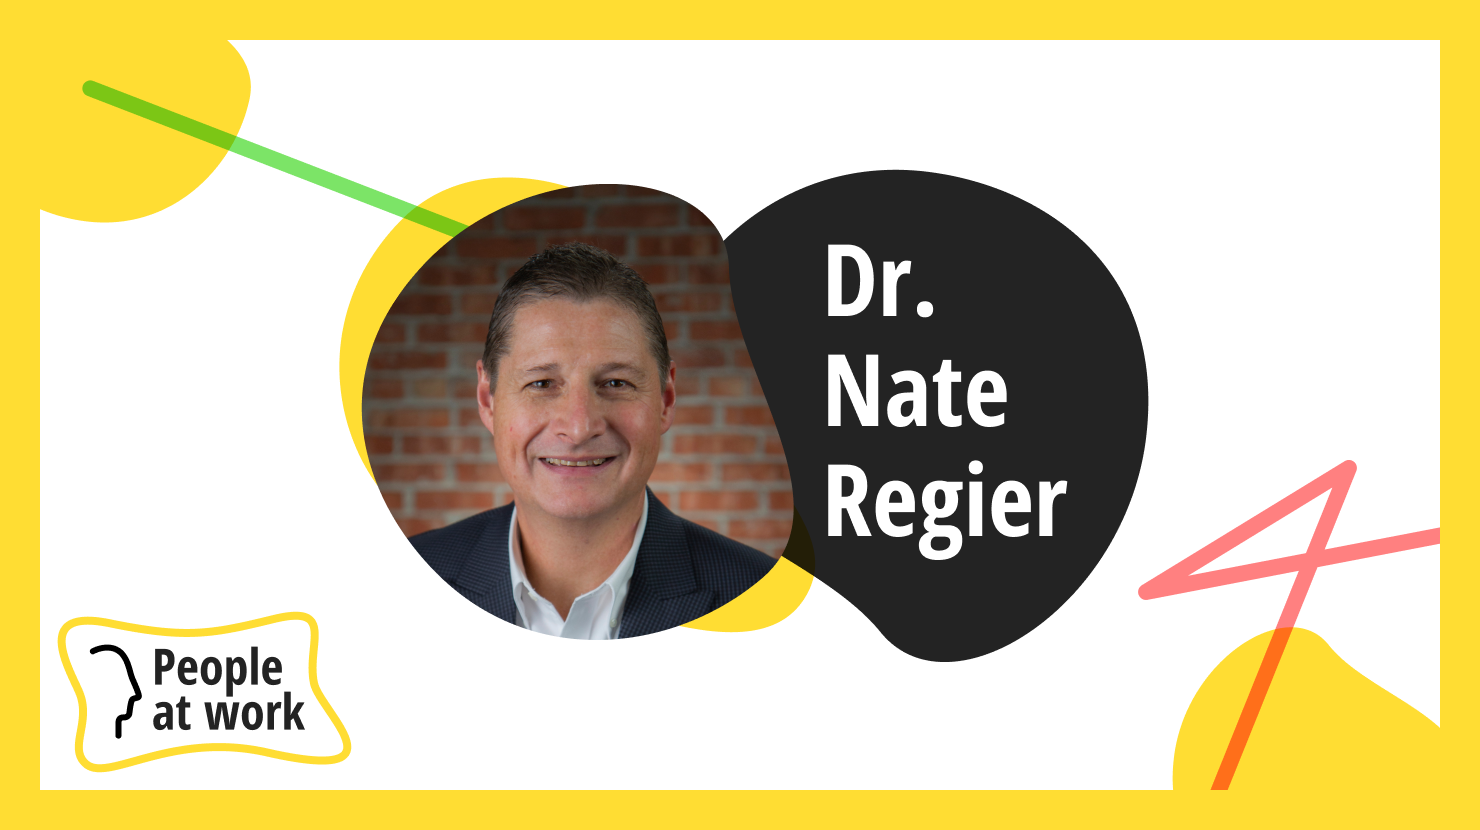 How you communicate tells us who you are with Dr. Nate Regier